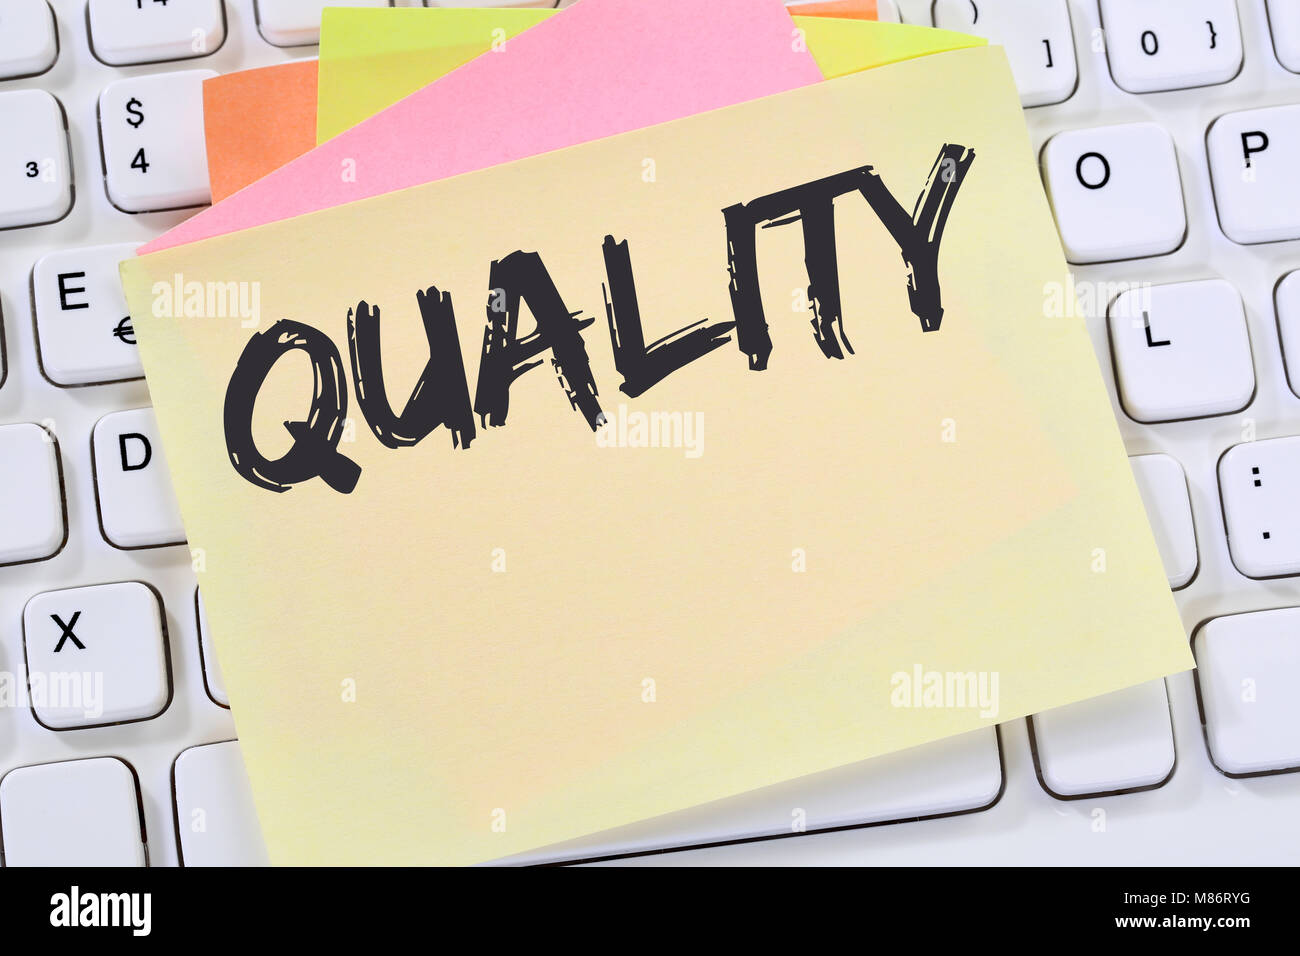 Quality control management success business concept successful note paper computer keyboard - Stock Image